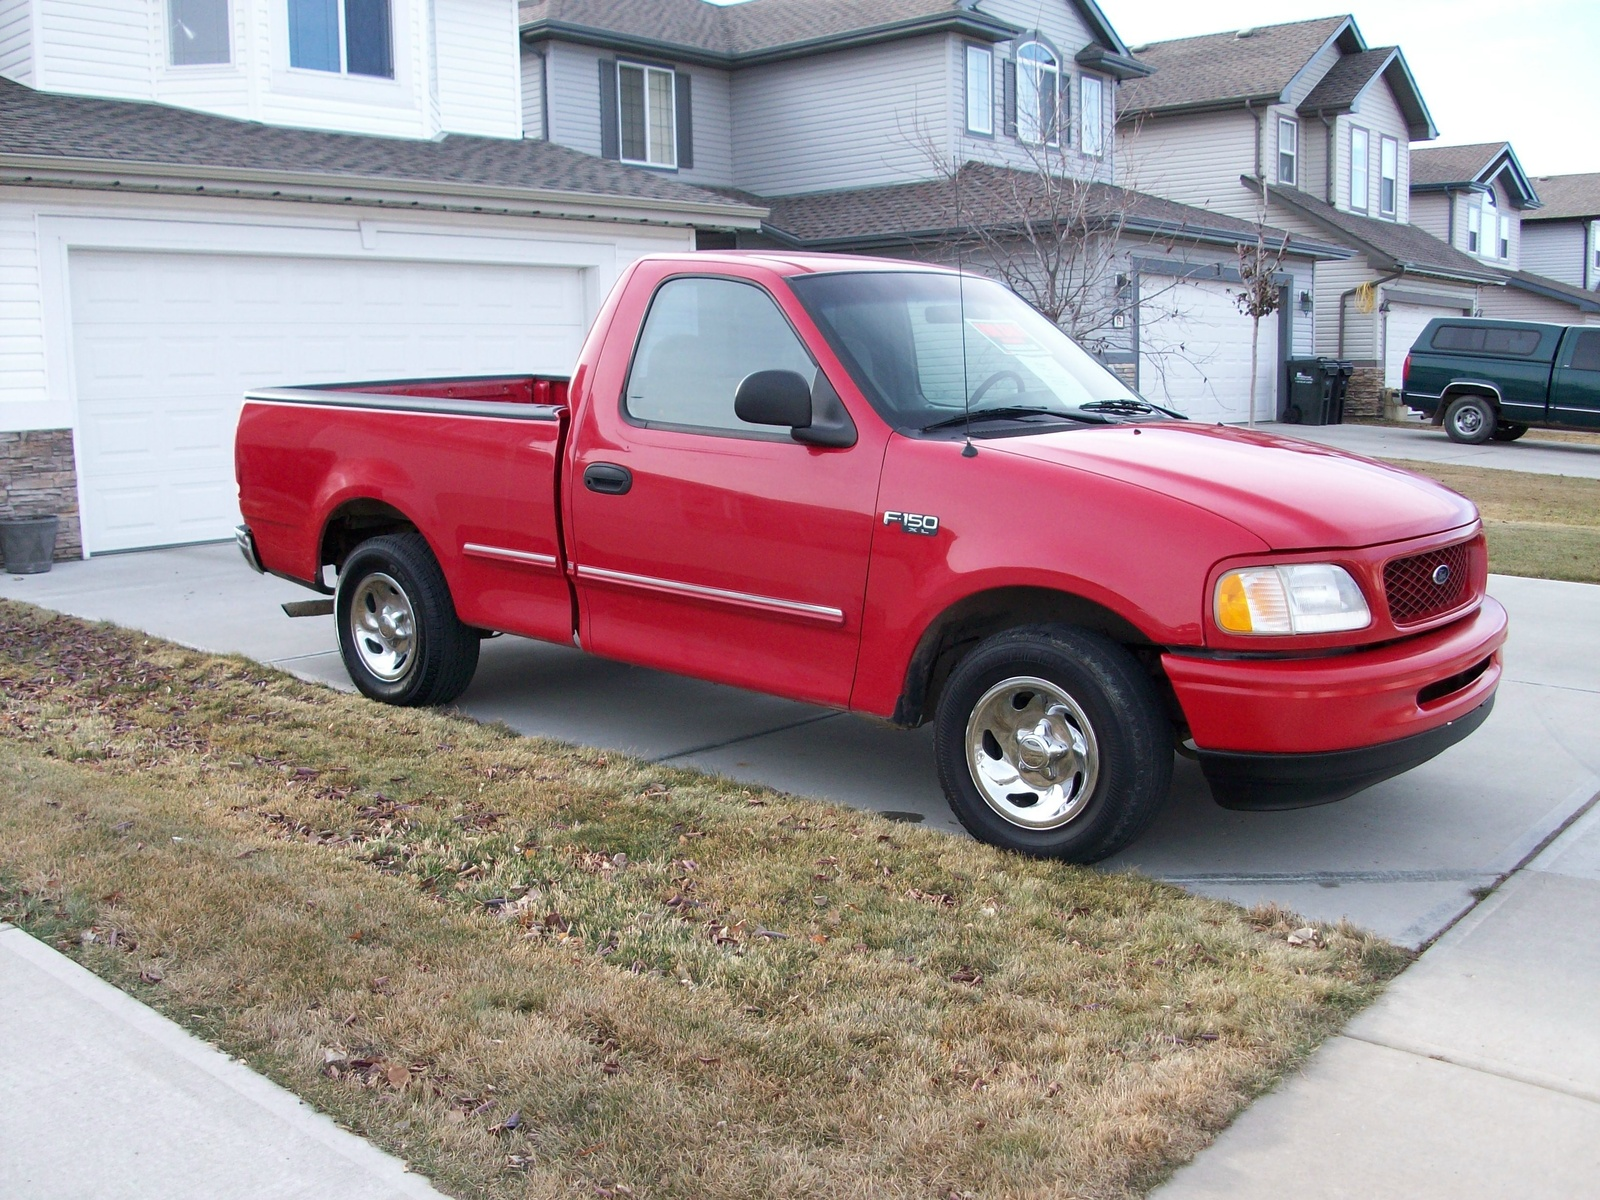 Ford Pickup Truck >> 1998 FORD F-150 - Image #12